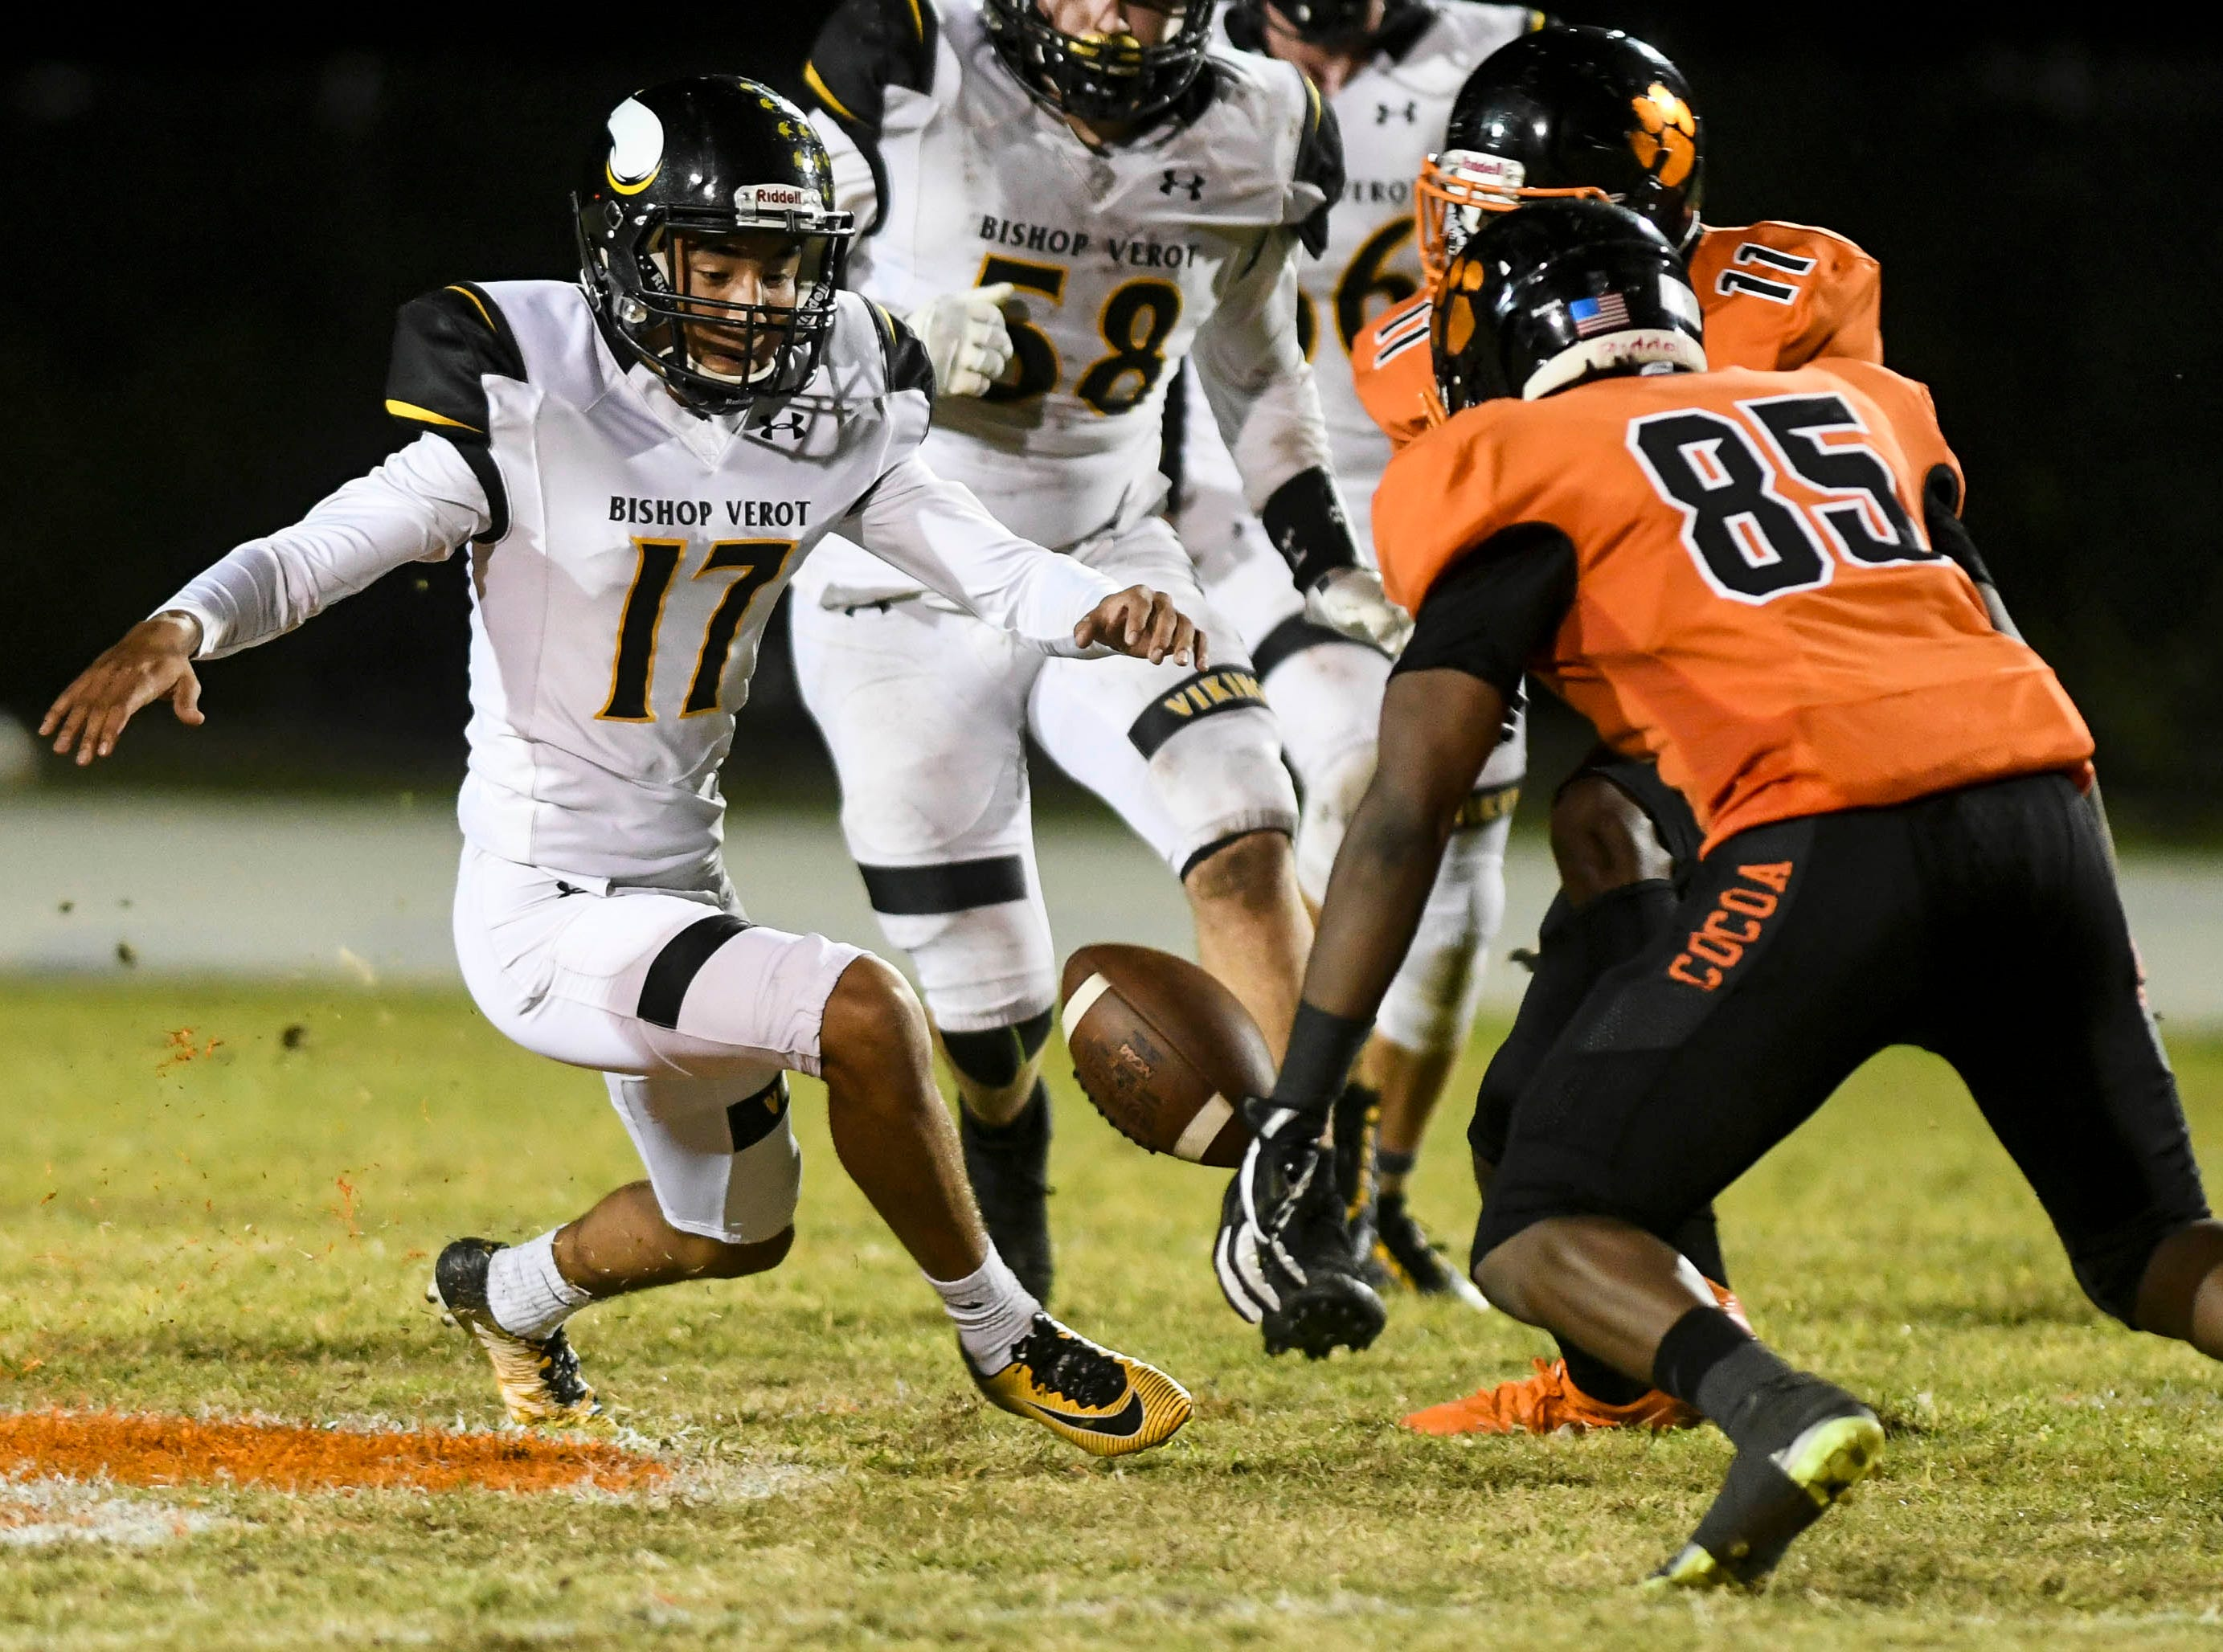 Logan Mcleod of Bishop Verot and Cocoa's Demarquez Henley vie for an onside kick during Friday's game at Blake Stadium.